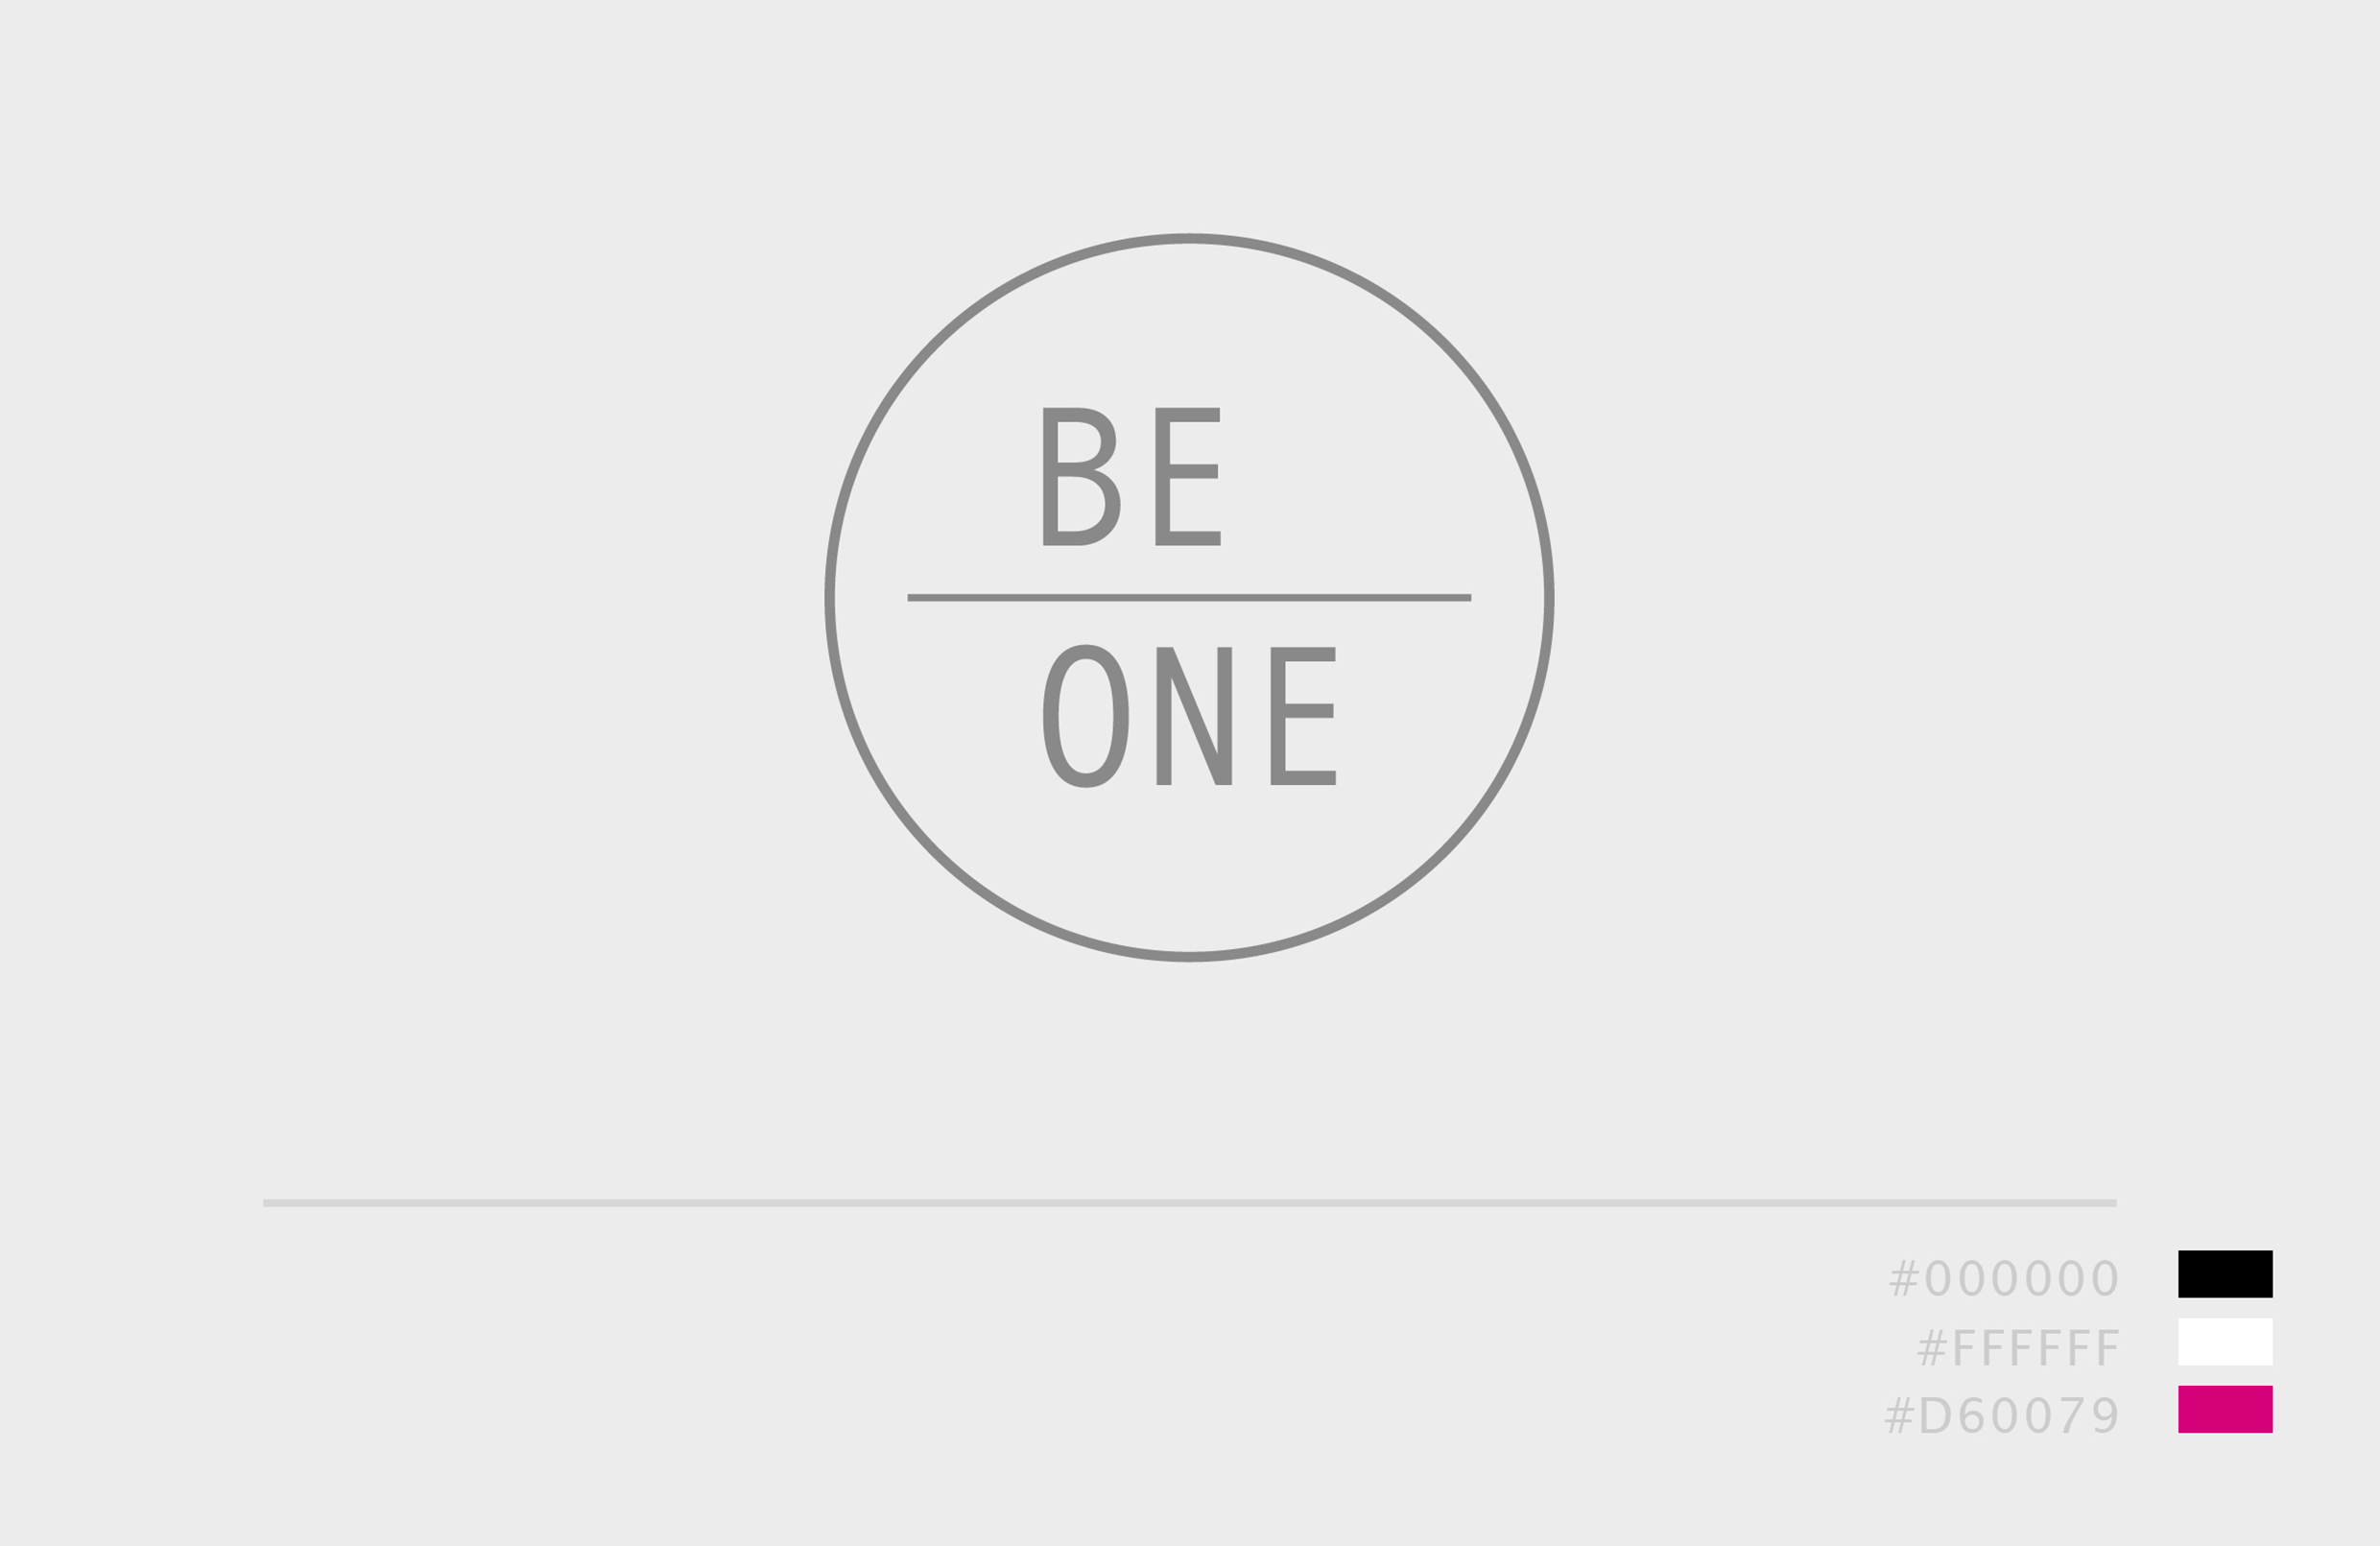 GEMINIWEB - IMAGE - STATIONERY - BE ONE - LOGO